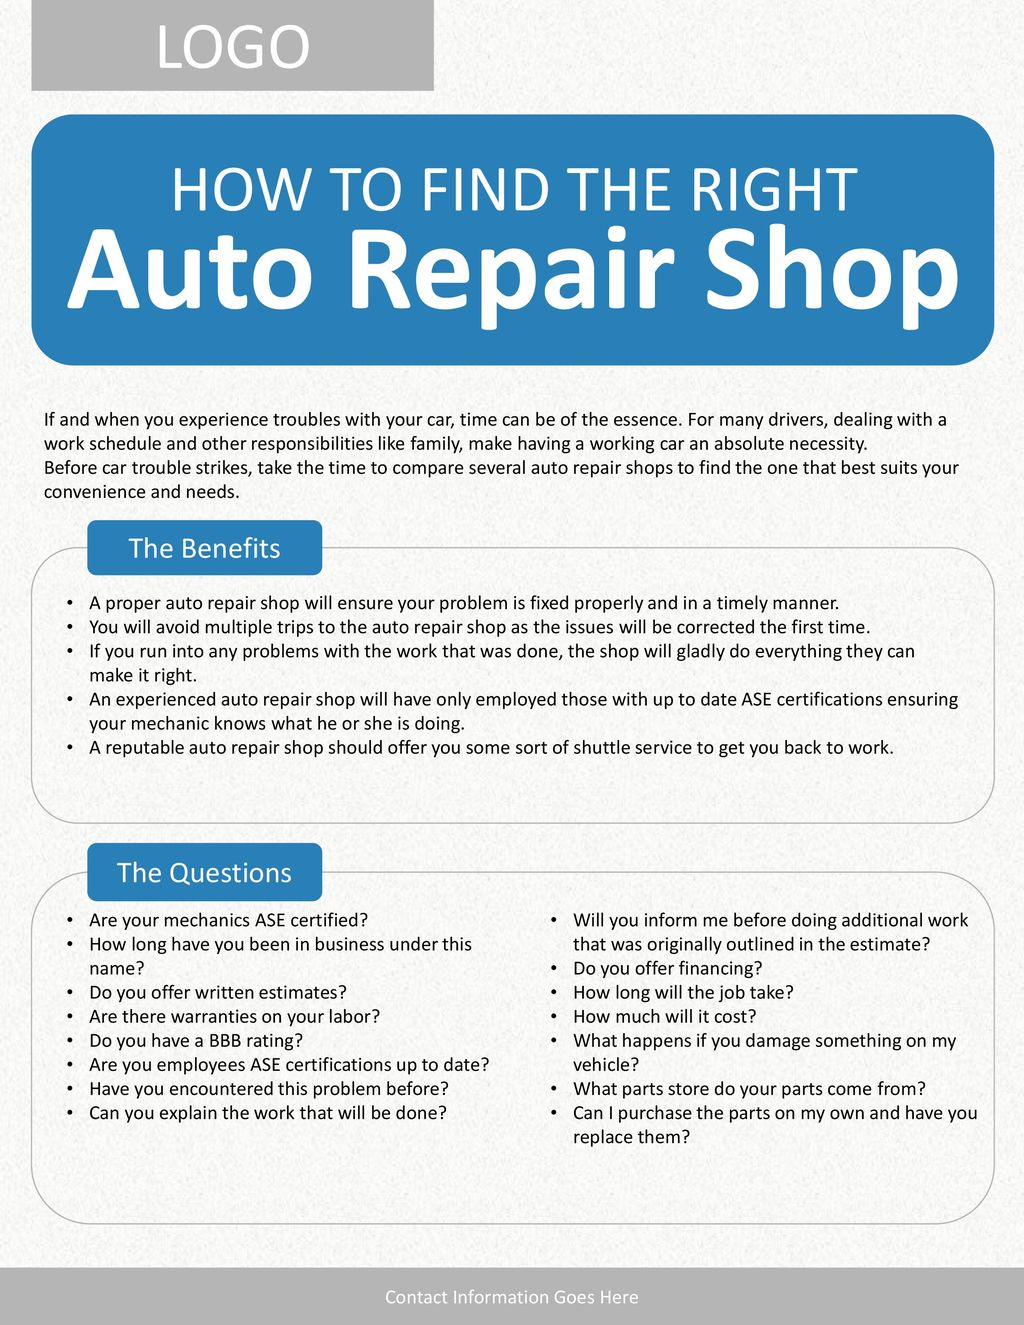 Auto Repair Shop Logo How To Find The Right The Benefits The